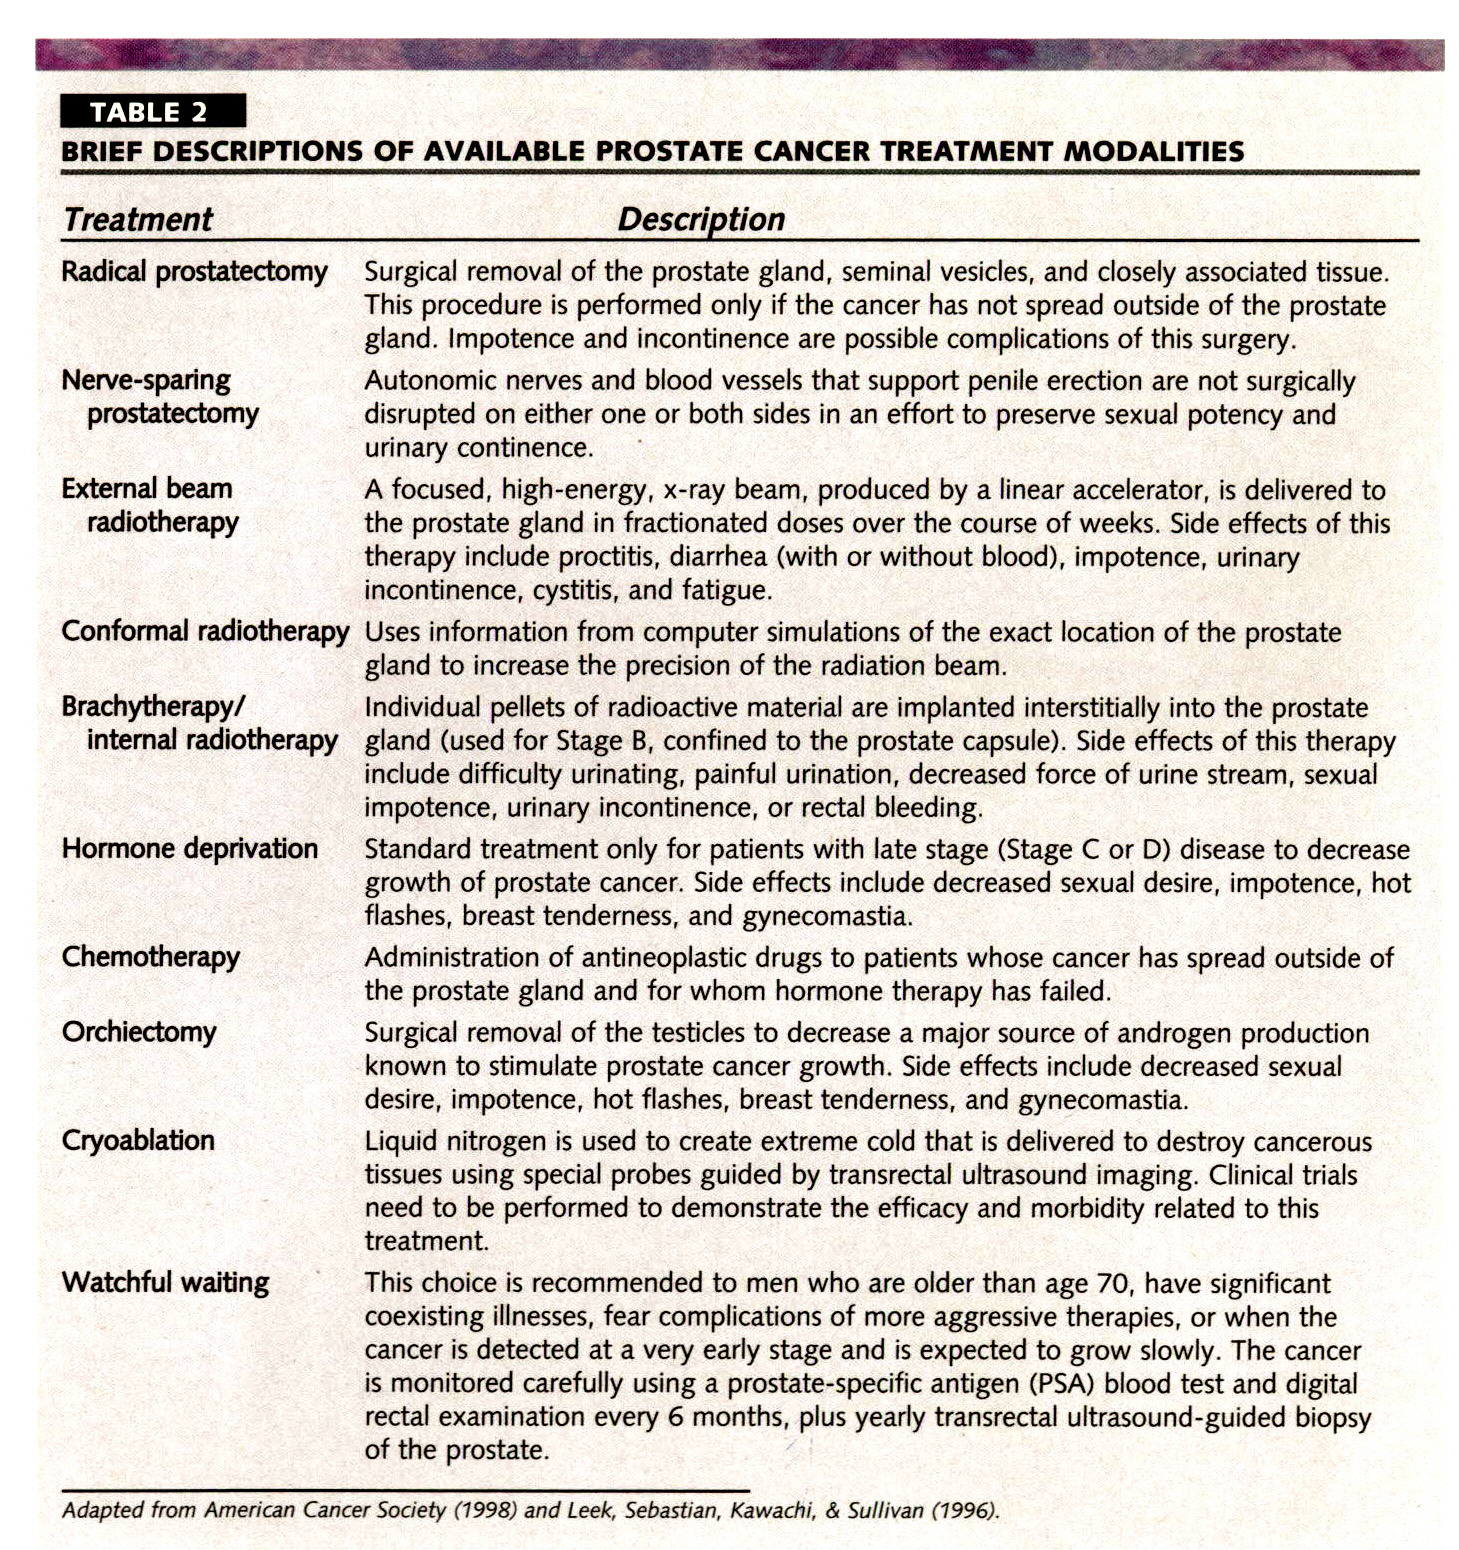 TABLE 2BRIEF DESCRIPTIONS OF AVAILABLE PROSTATE CANCER TREATMENT MODALITIES